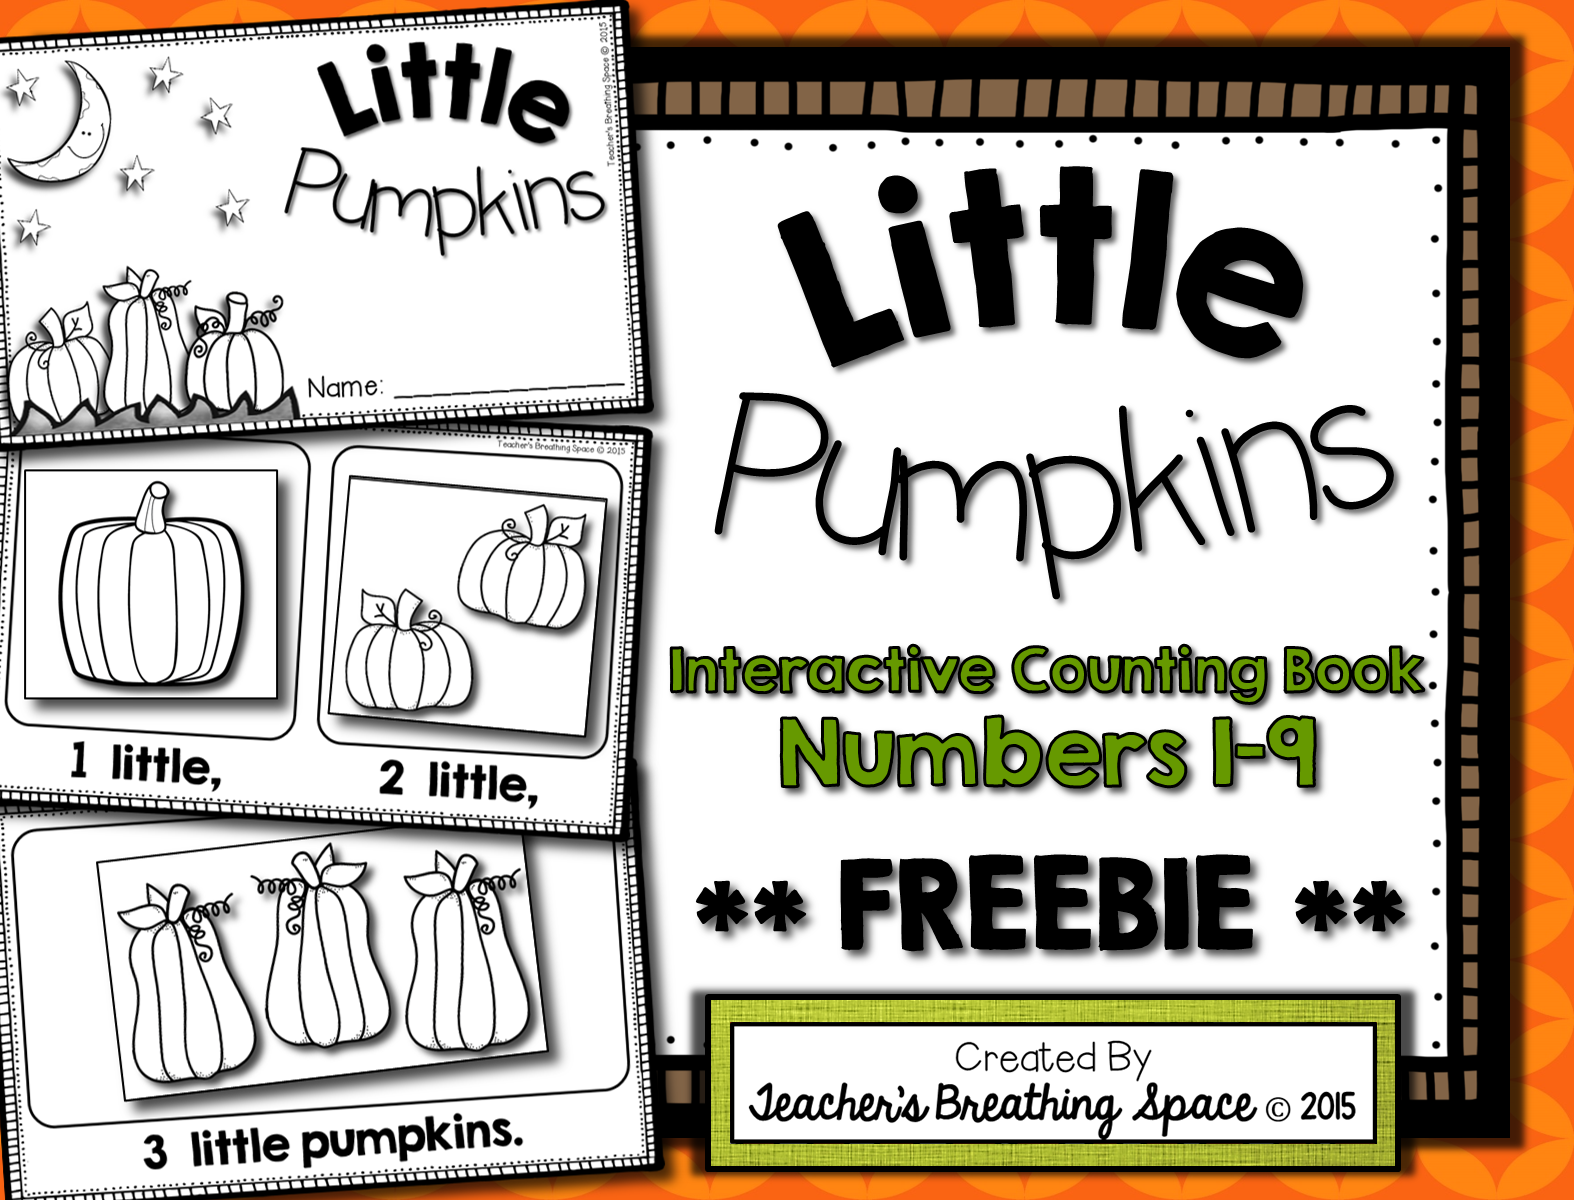 Little Pumpkins Halloween Pumpkin Counting Book